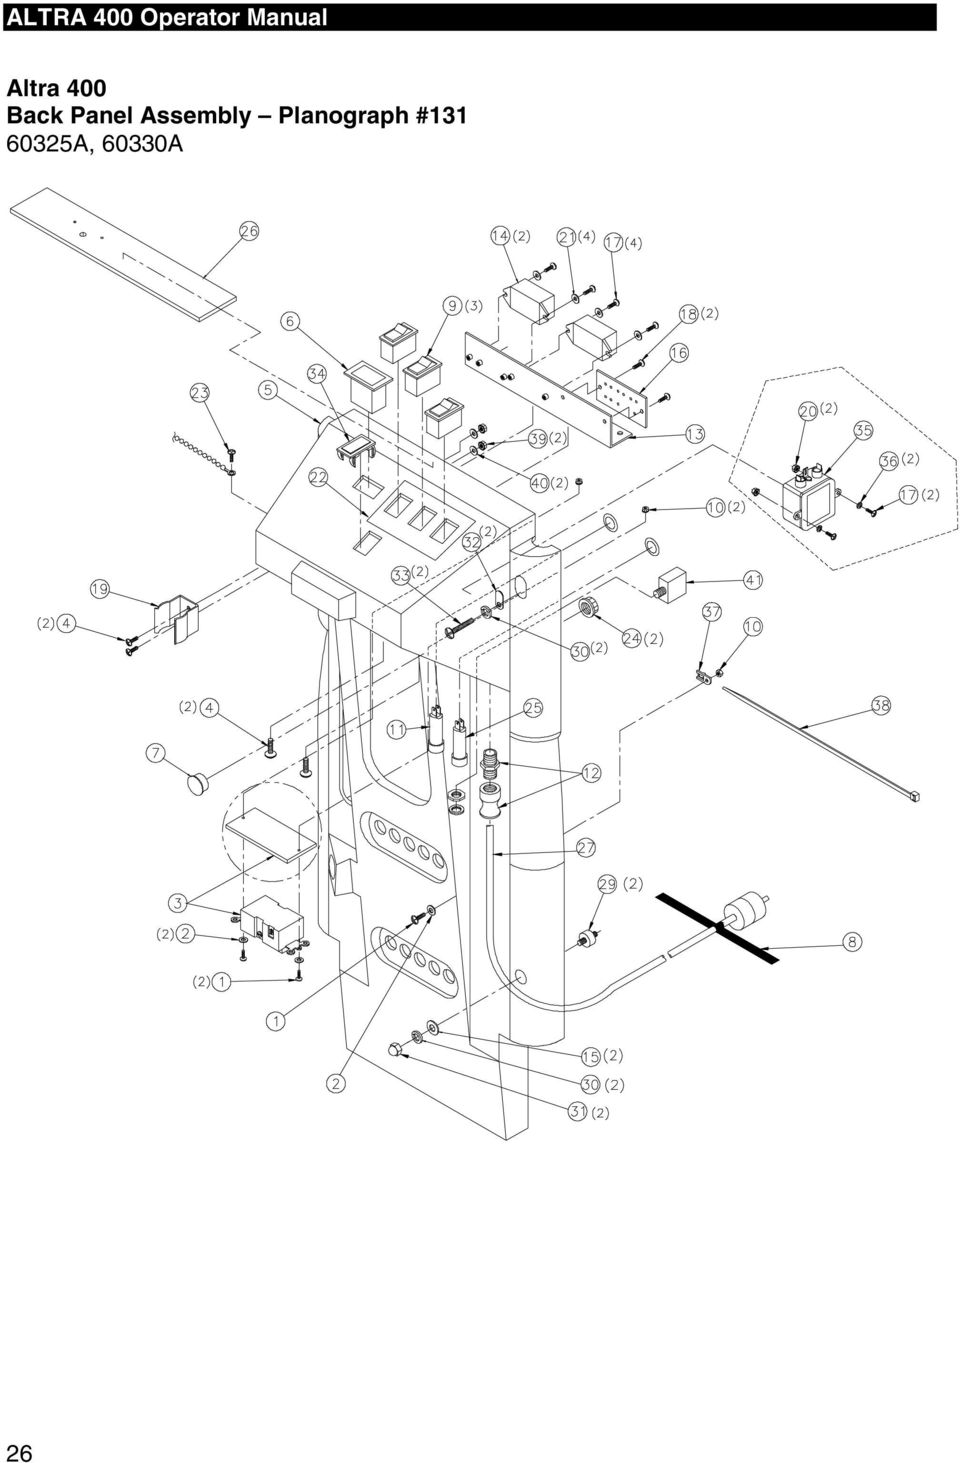 ALTRA 400 Operator Manual. Planographs and Wiring Diagrams